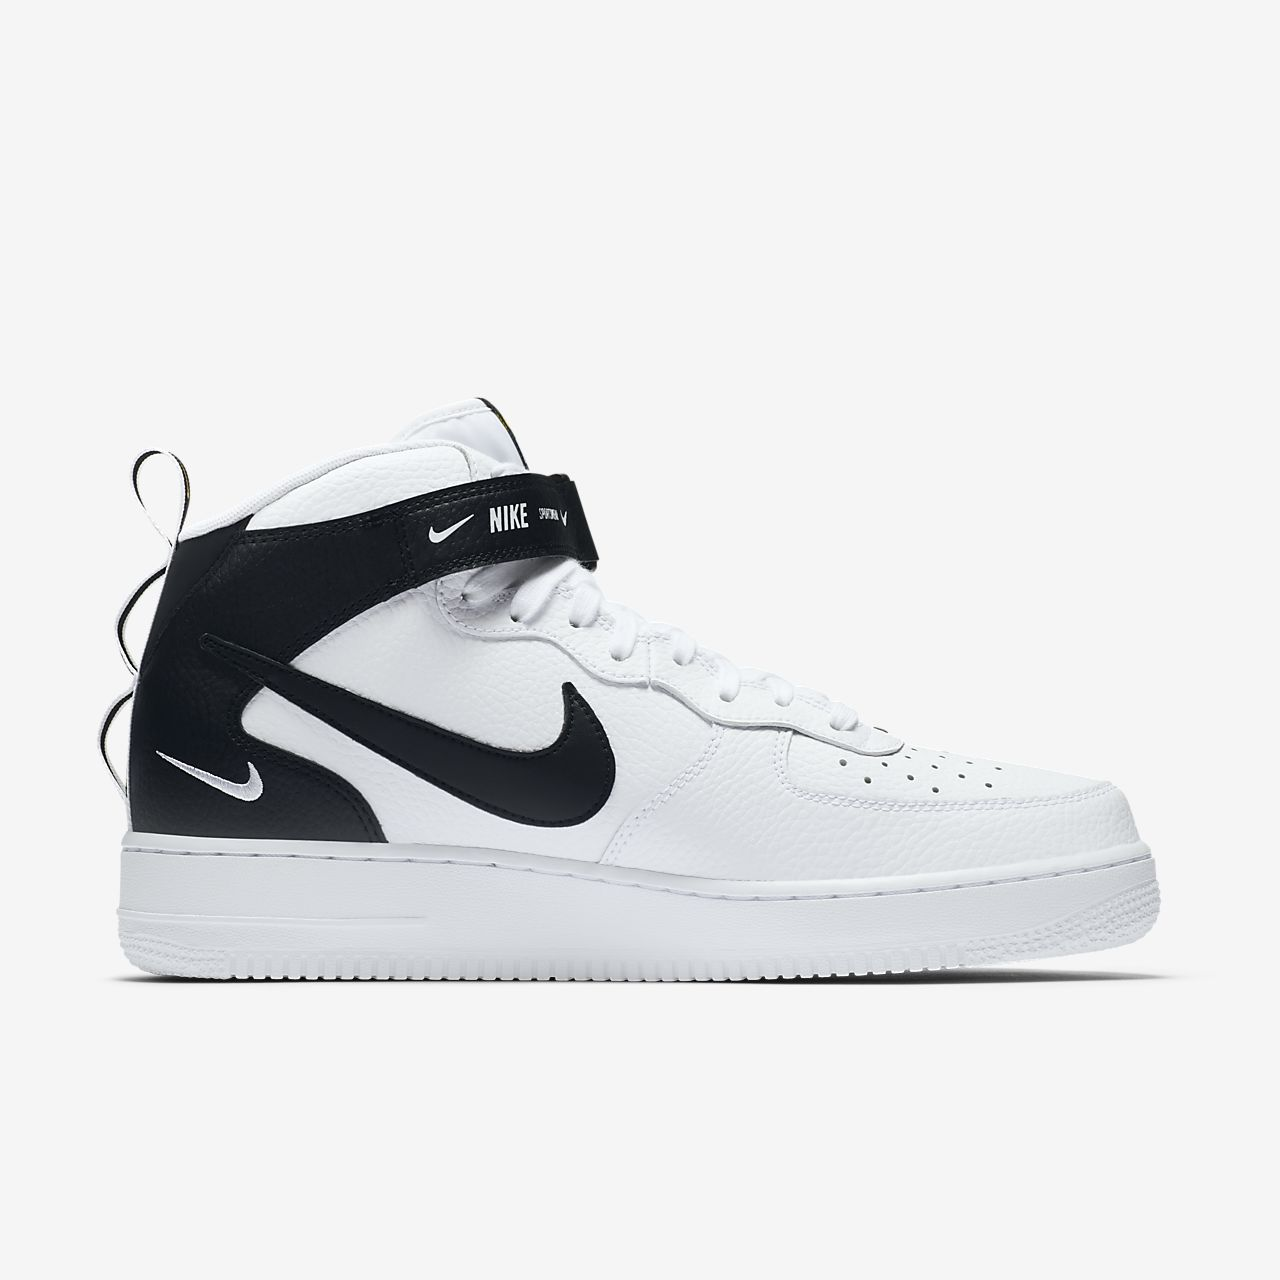 sports shoes 4f34c d6d50 Nike Air Force 1 07 Mid LV8